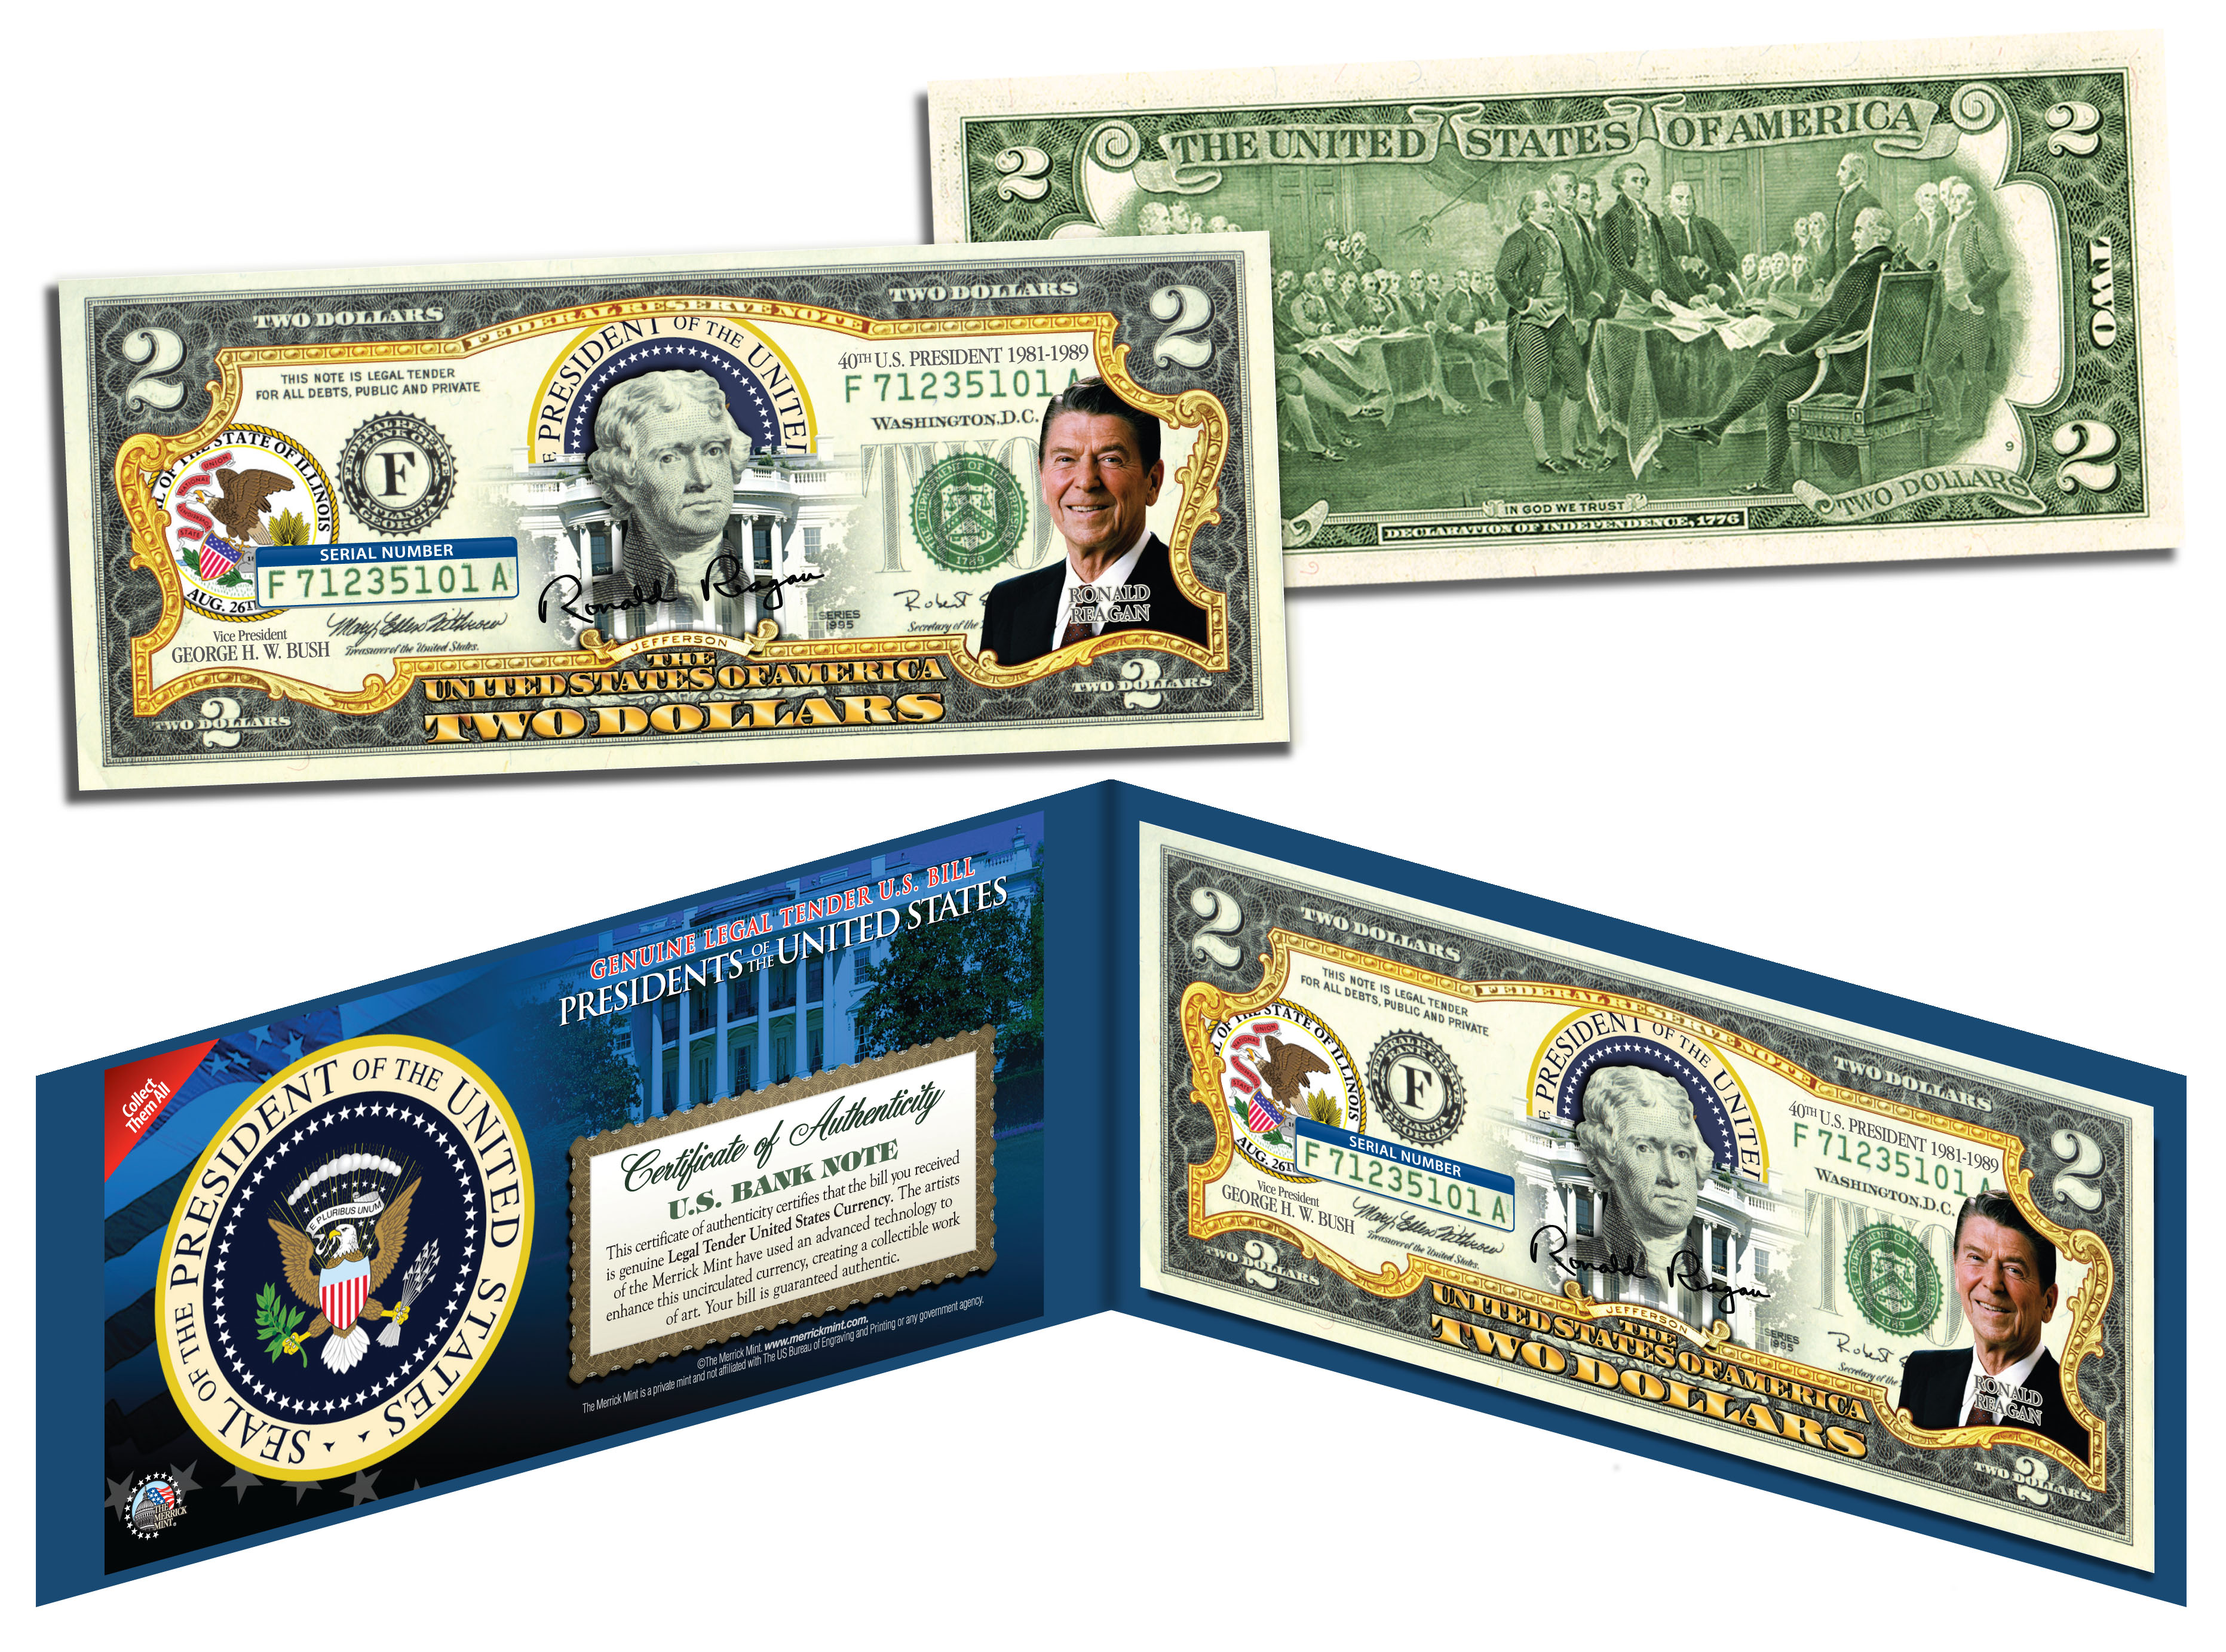 RONALD-REAGAN-40th-U-S-President-Colorized-2-Bill-US-Genuine-Legal-Tender